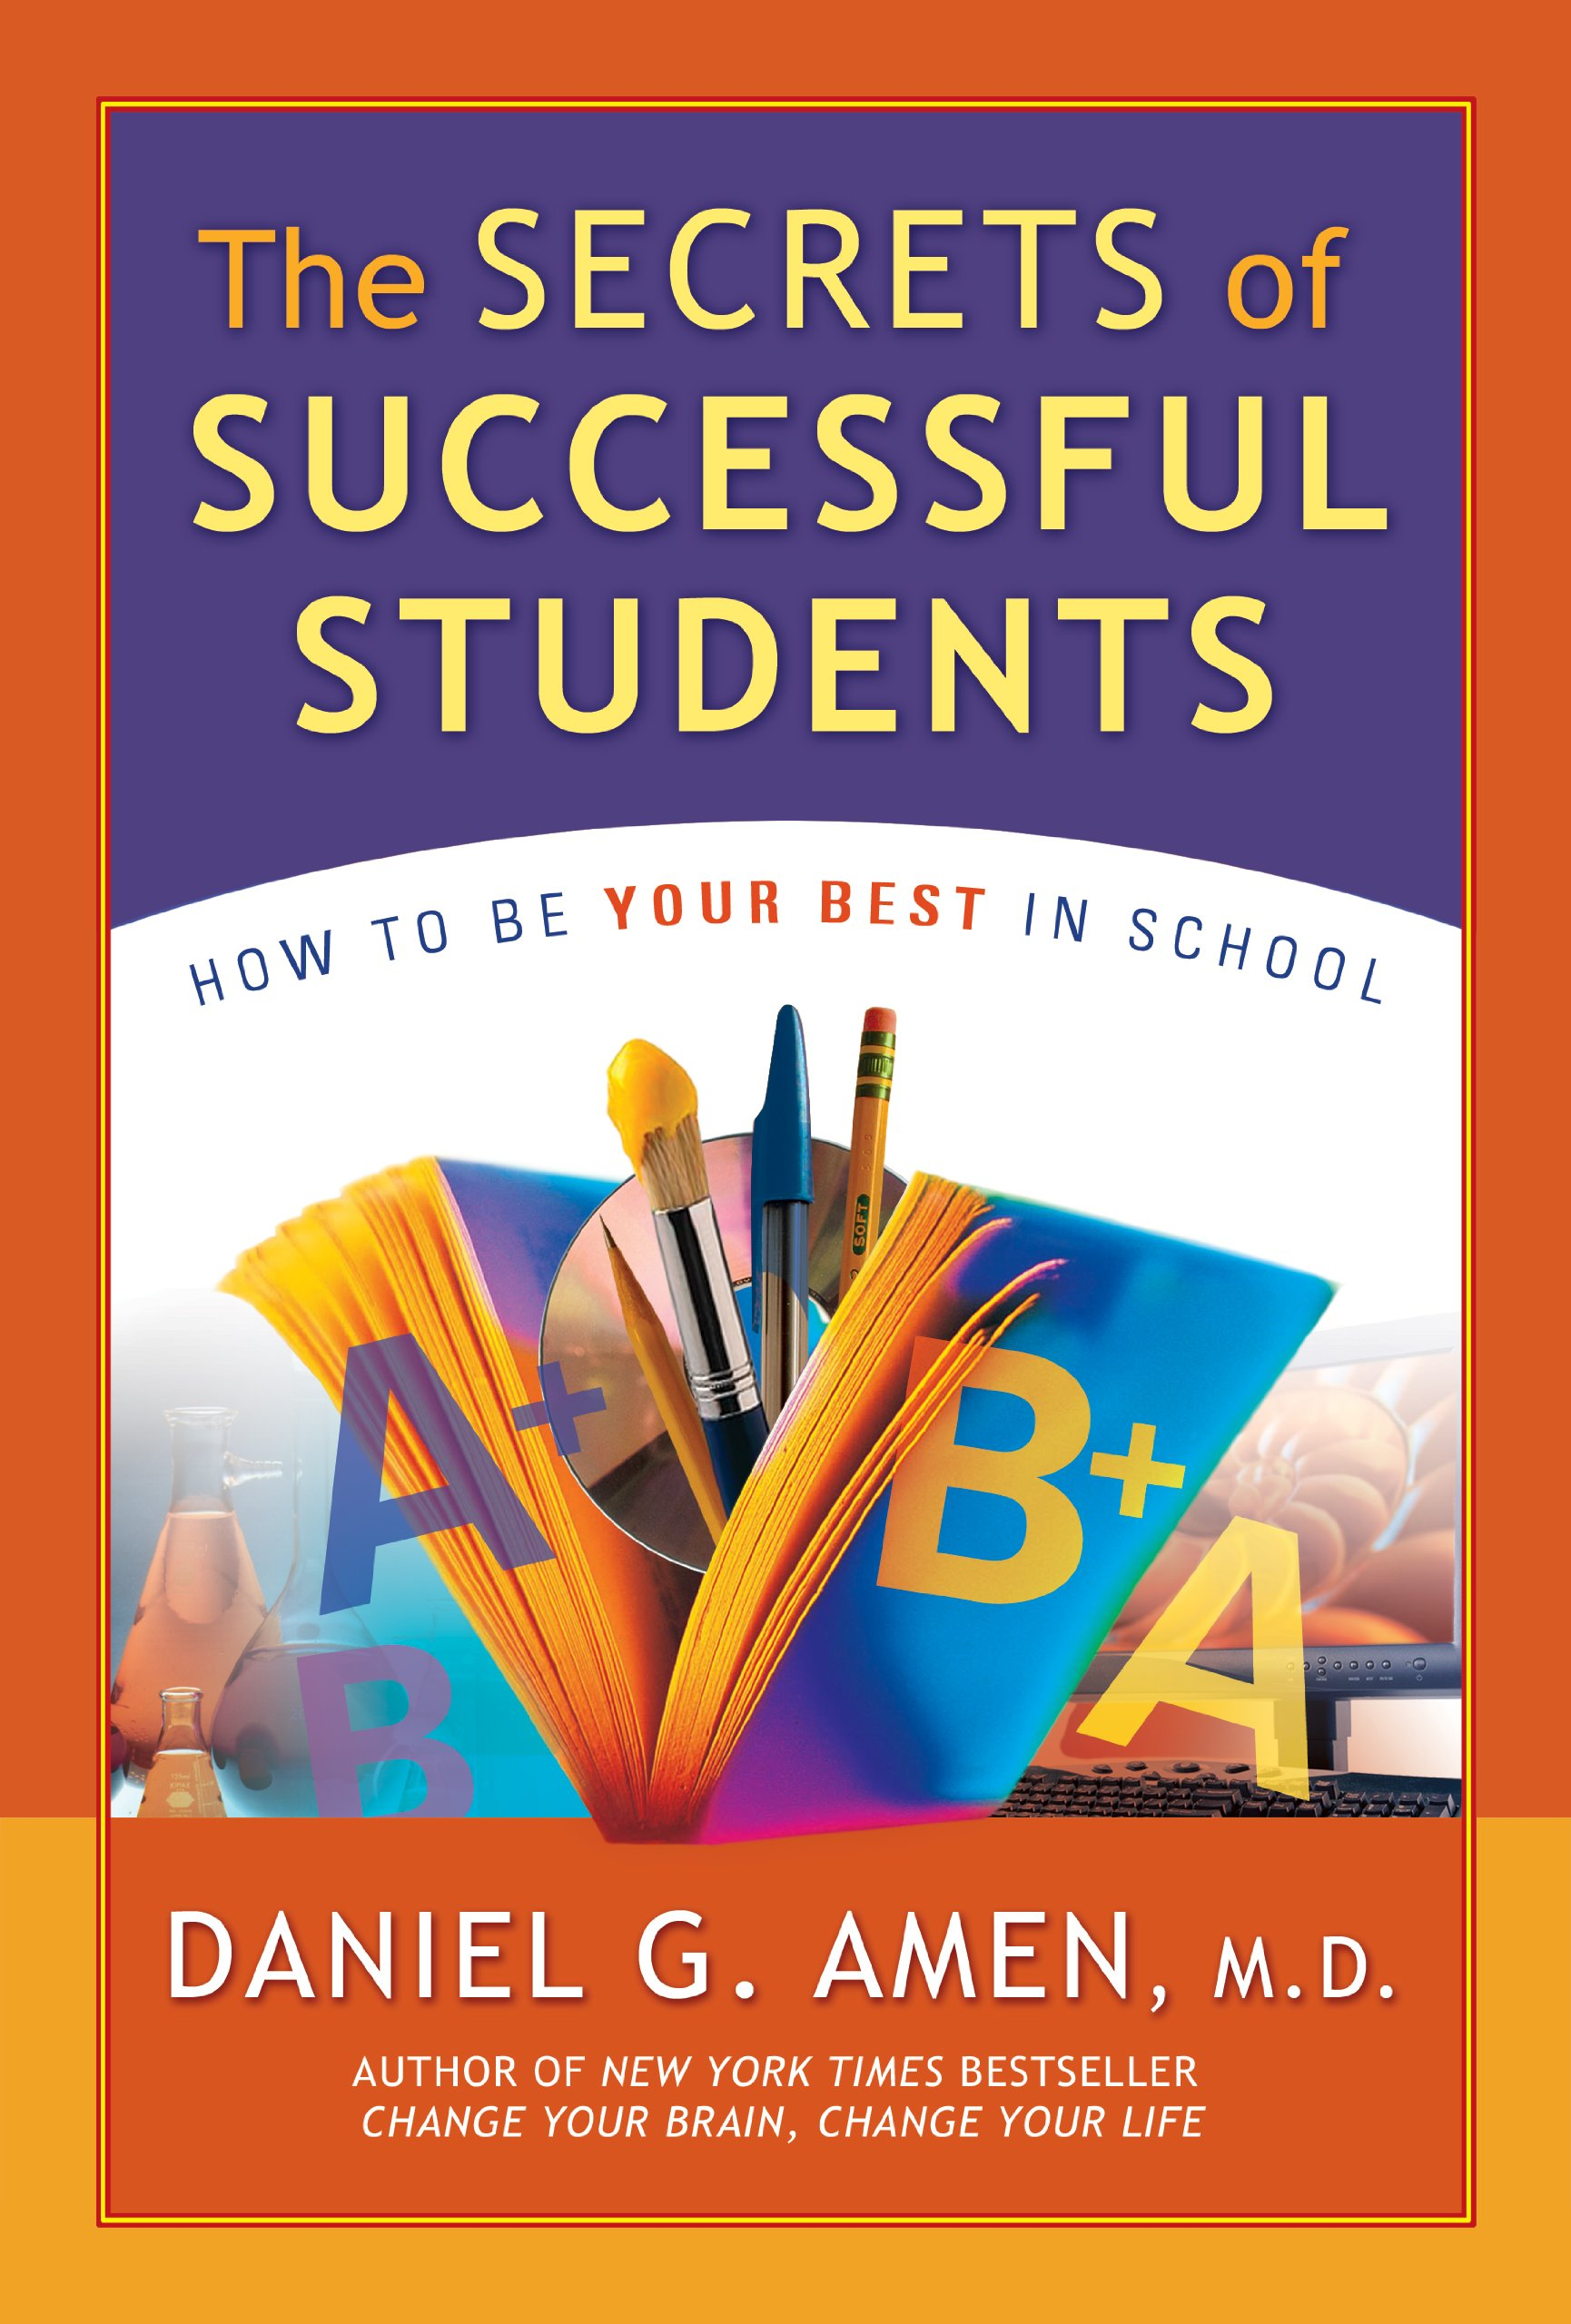 Download The Secrets of Successful Students PDF